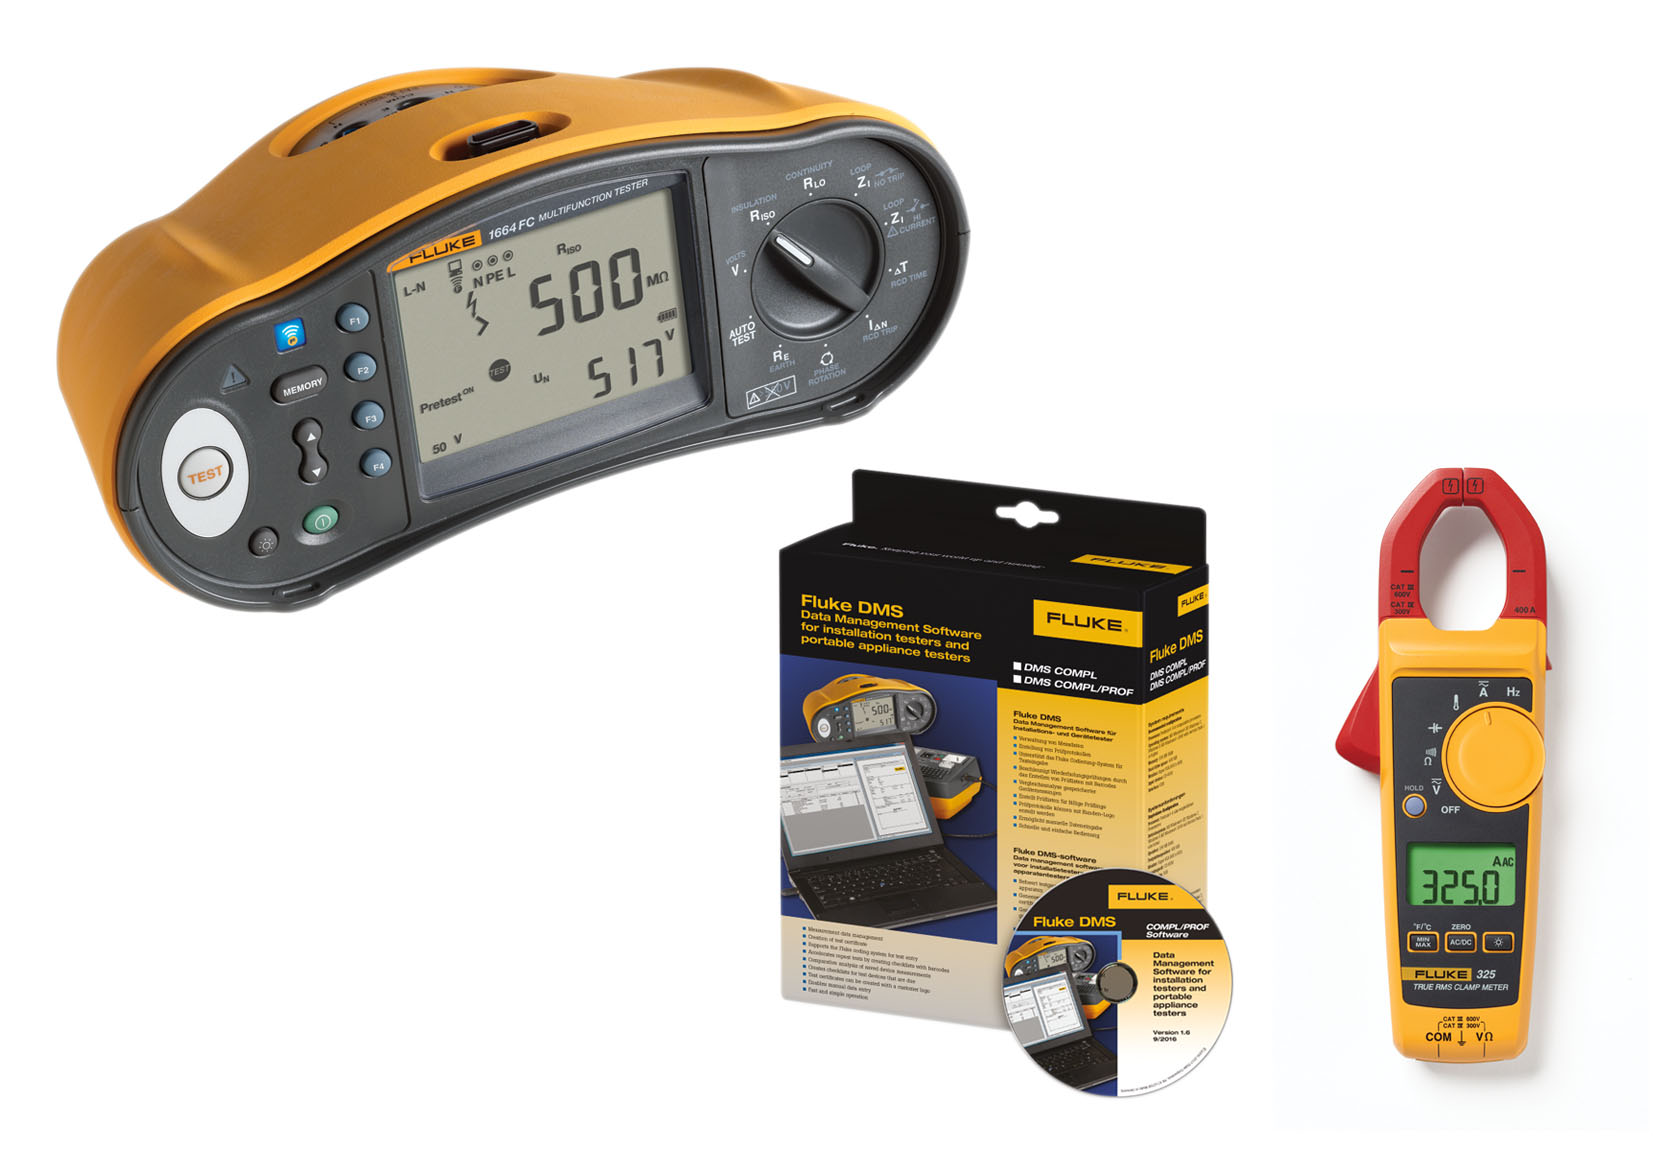 Fluke offers two Multifunction Installation Testers